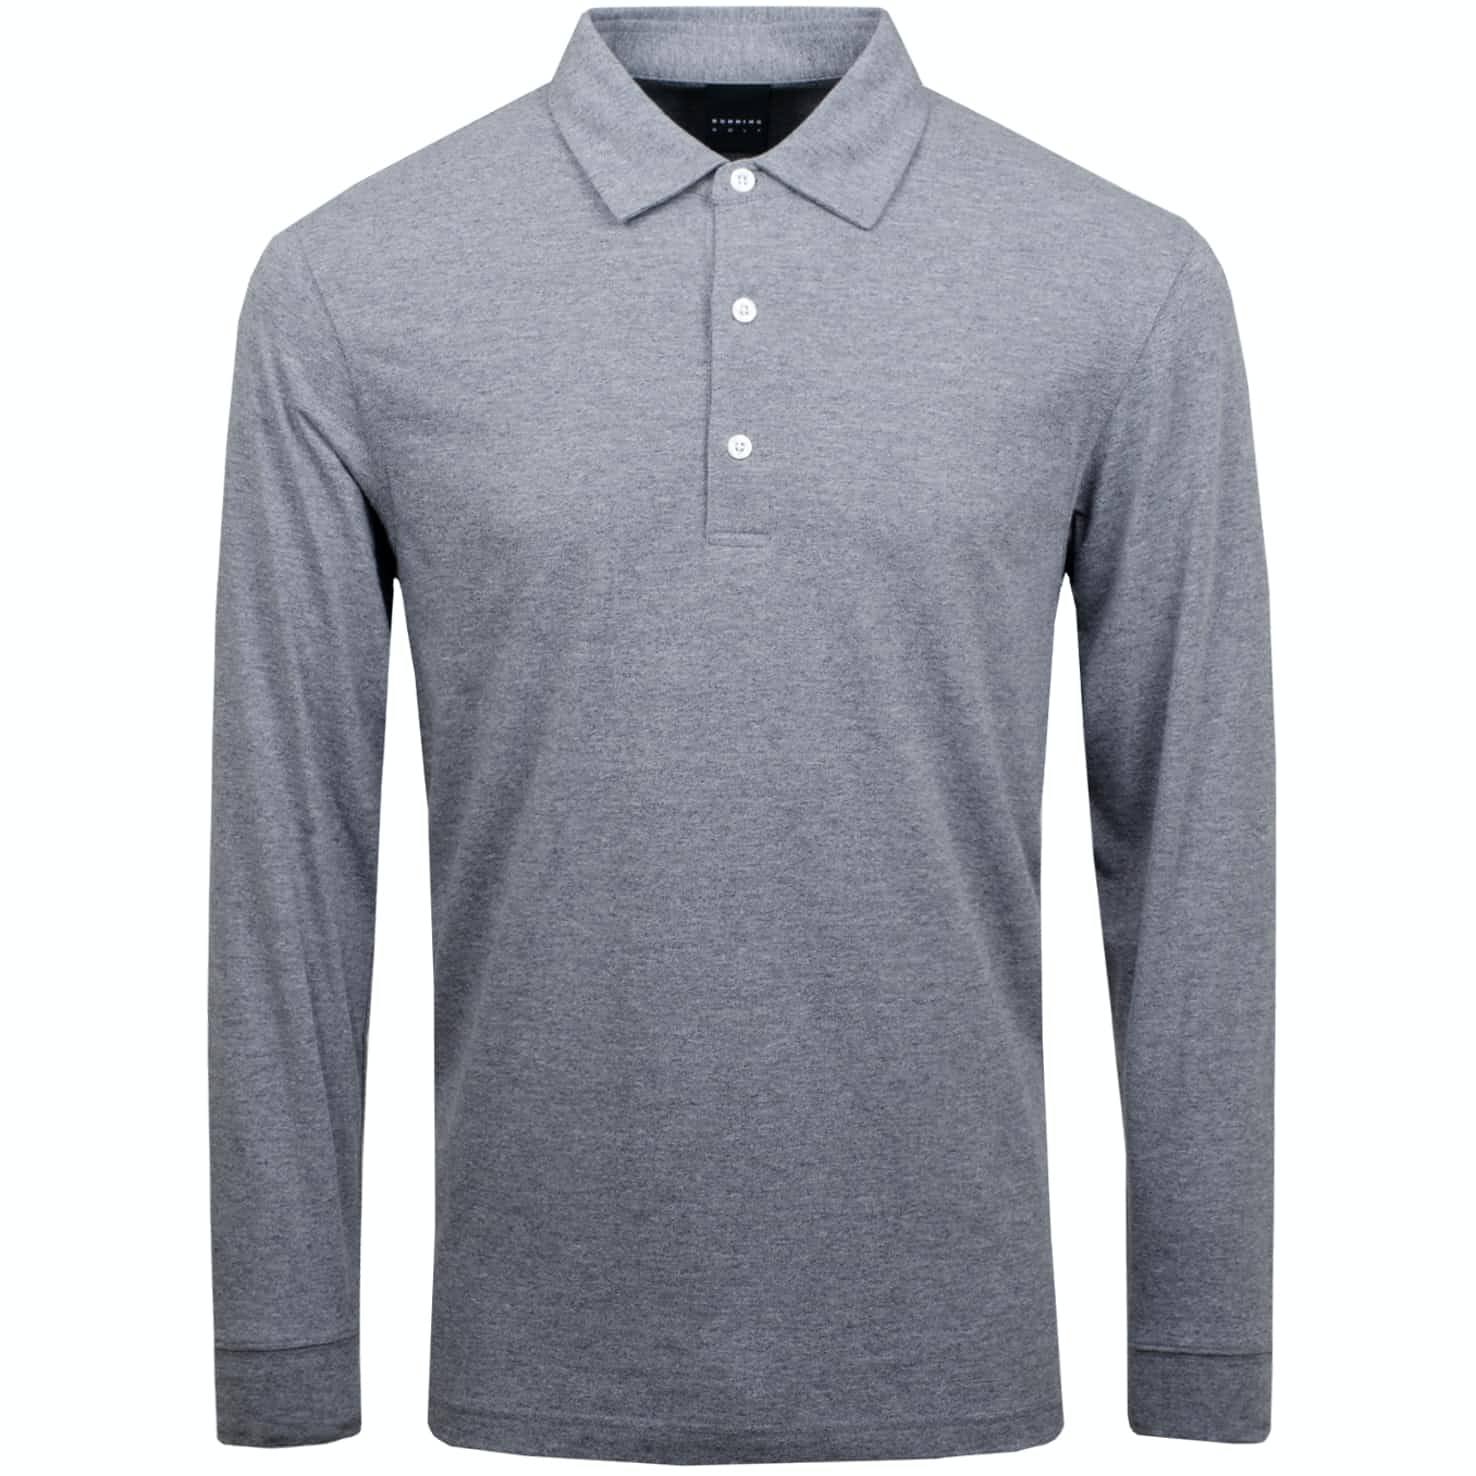 Vance LS Natural Hand Polo Grey Heather - 2020